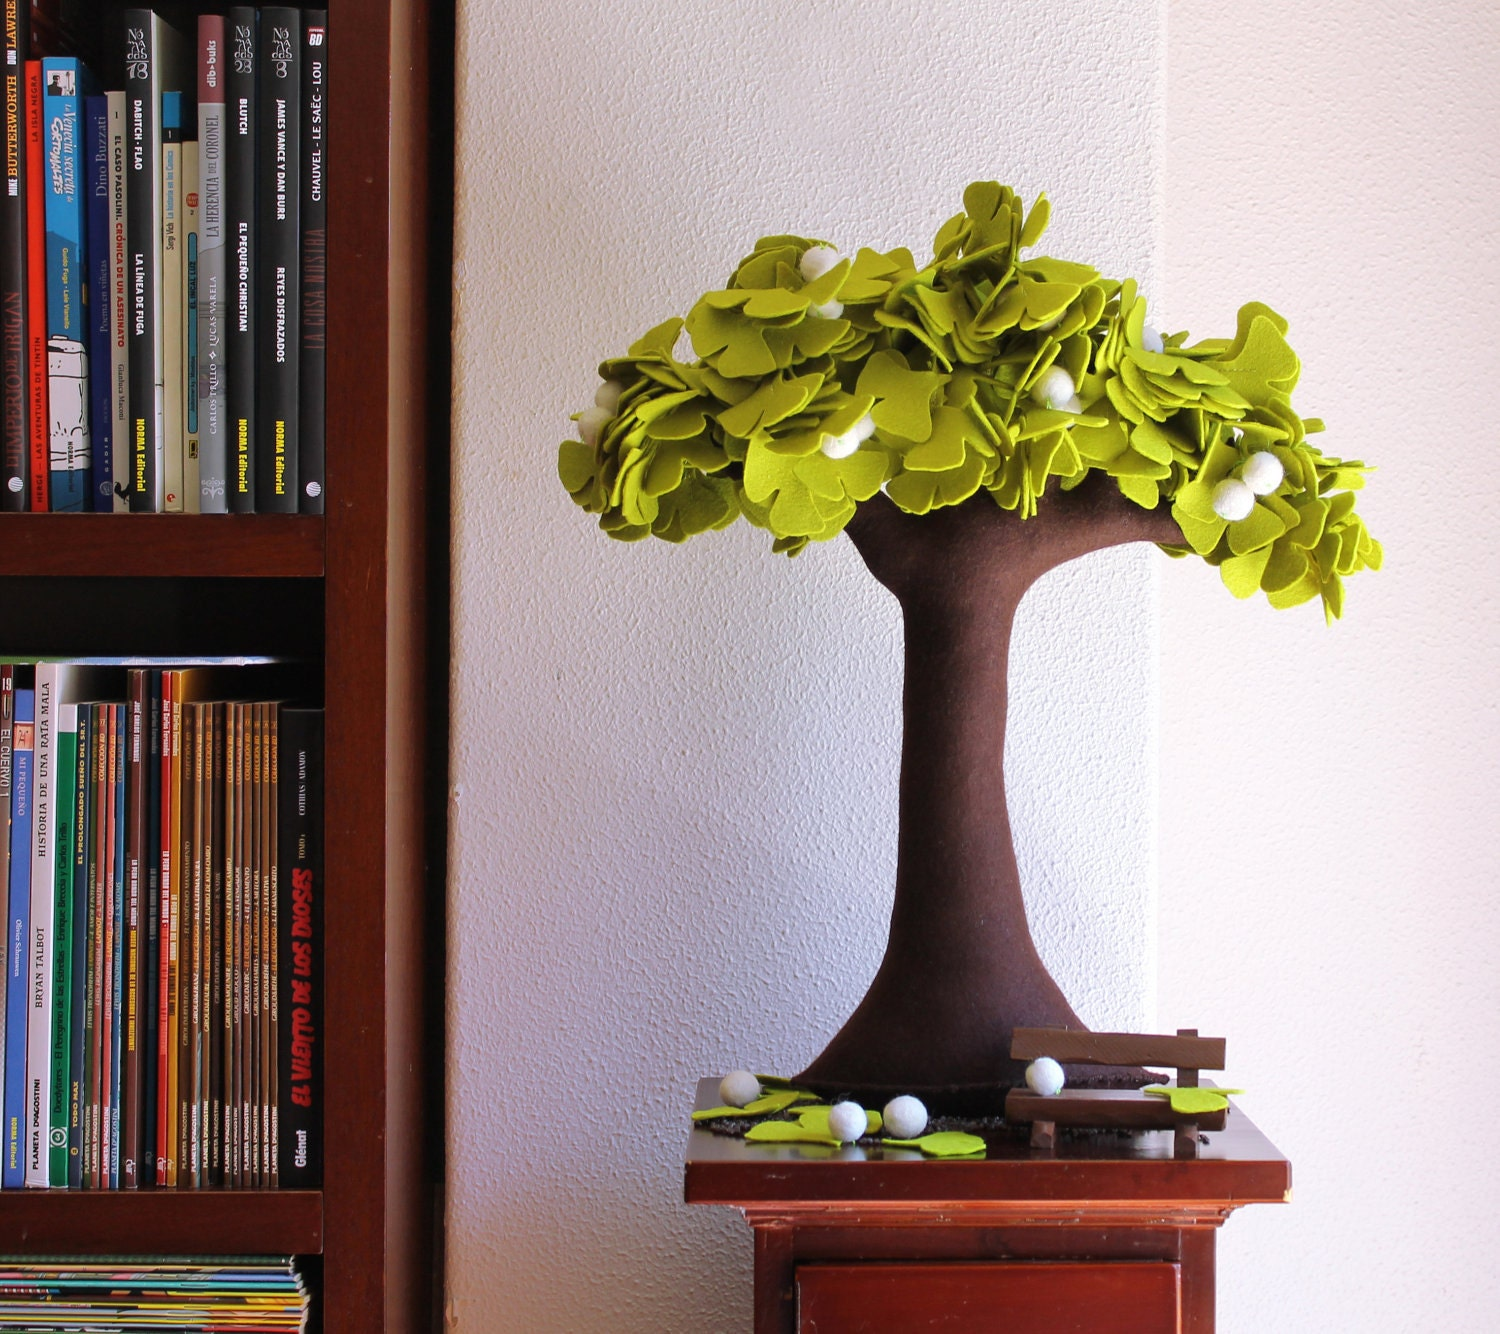 Ginkgo biloba felt tree home decor for Home decor survivor 5